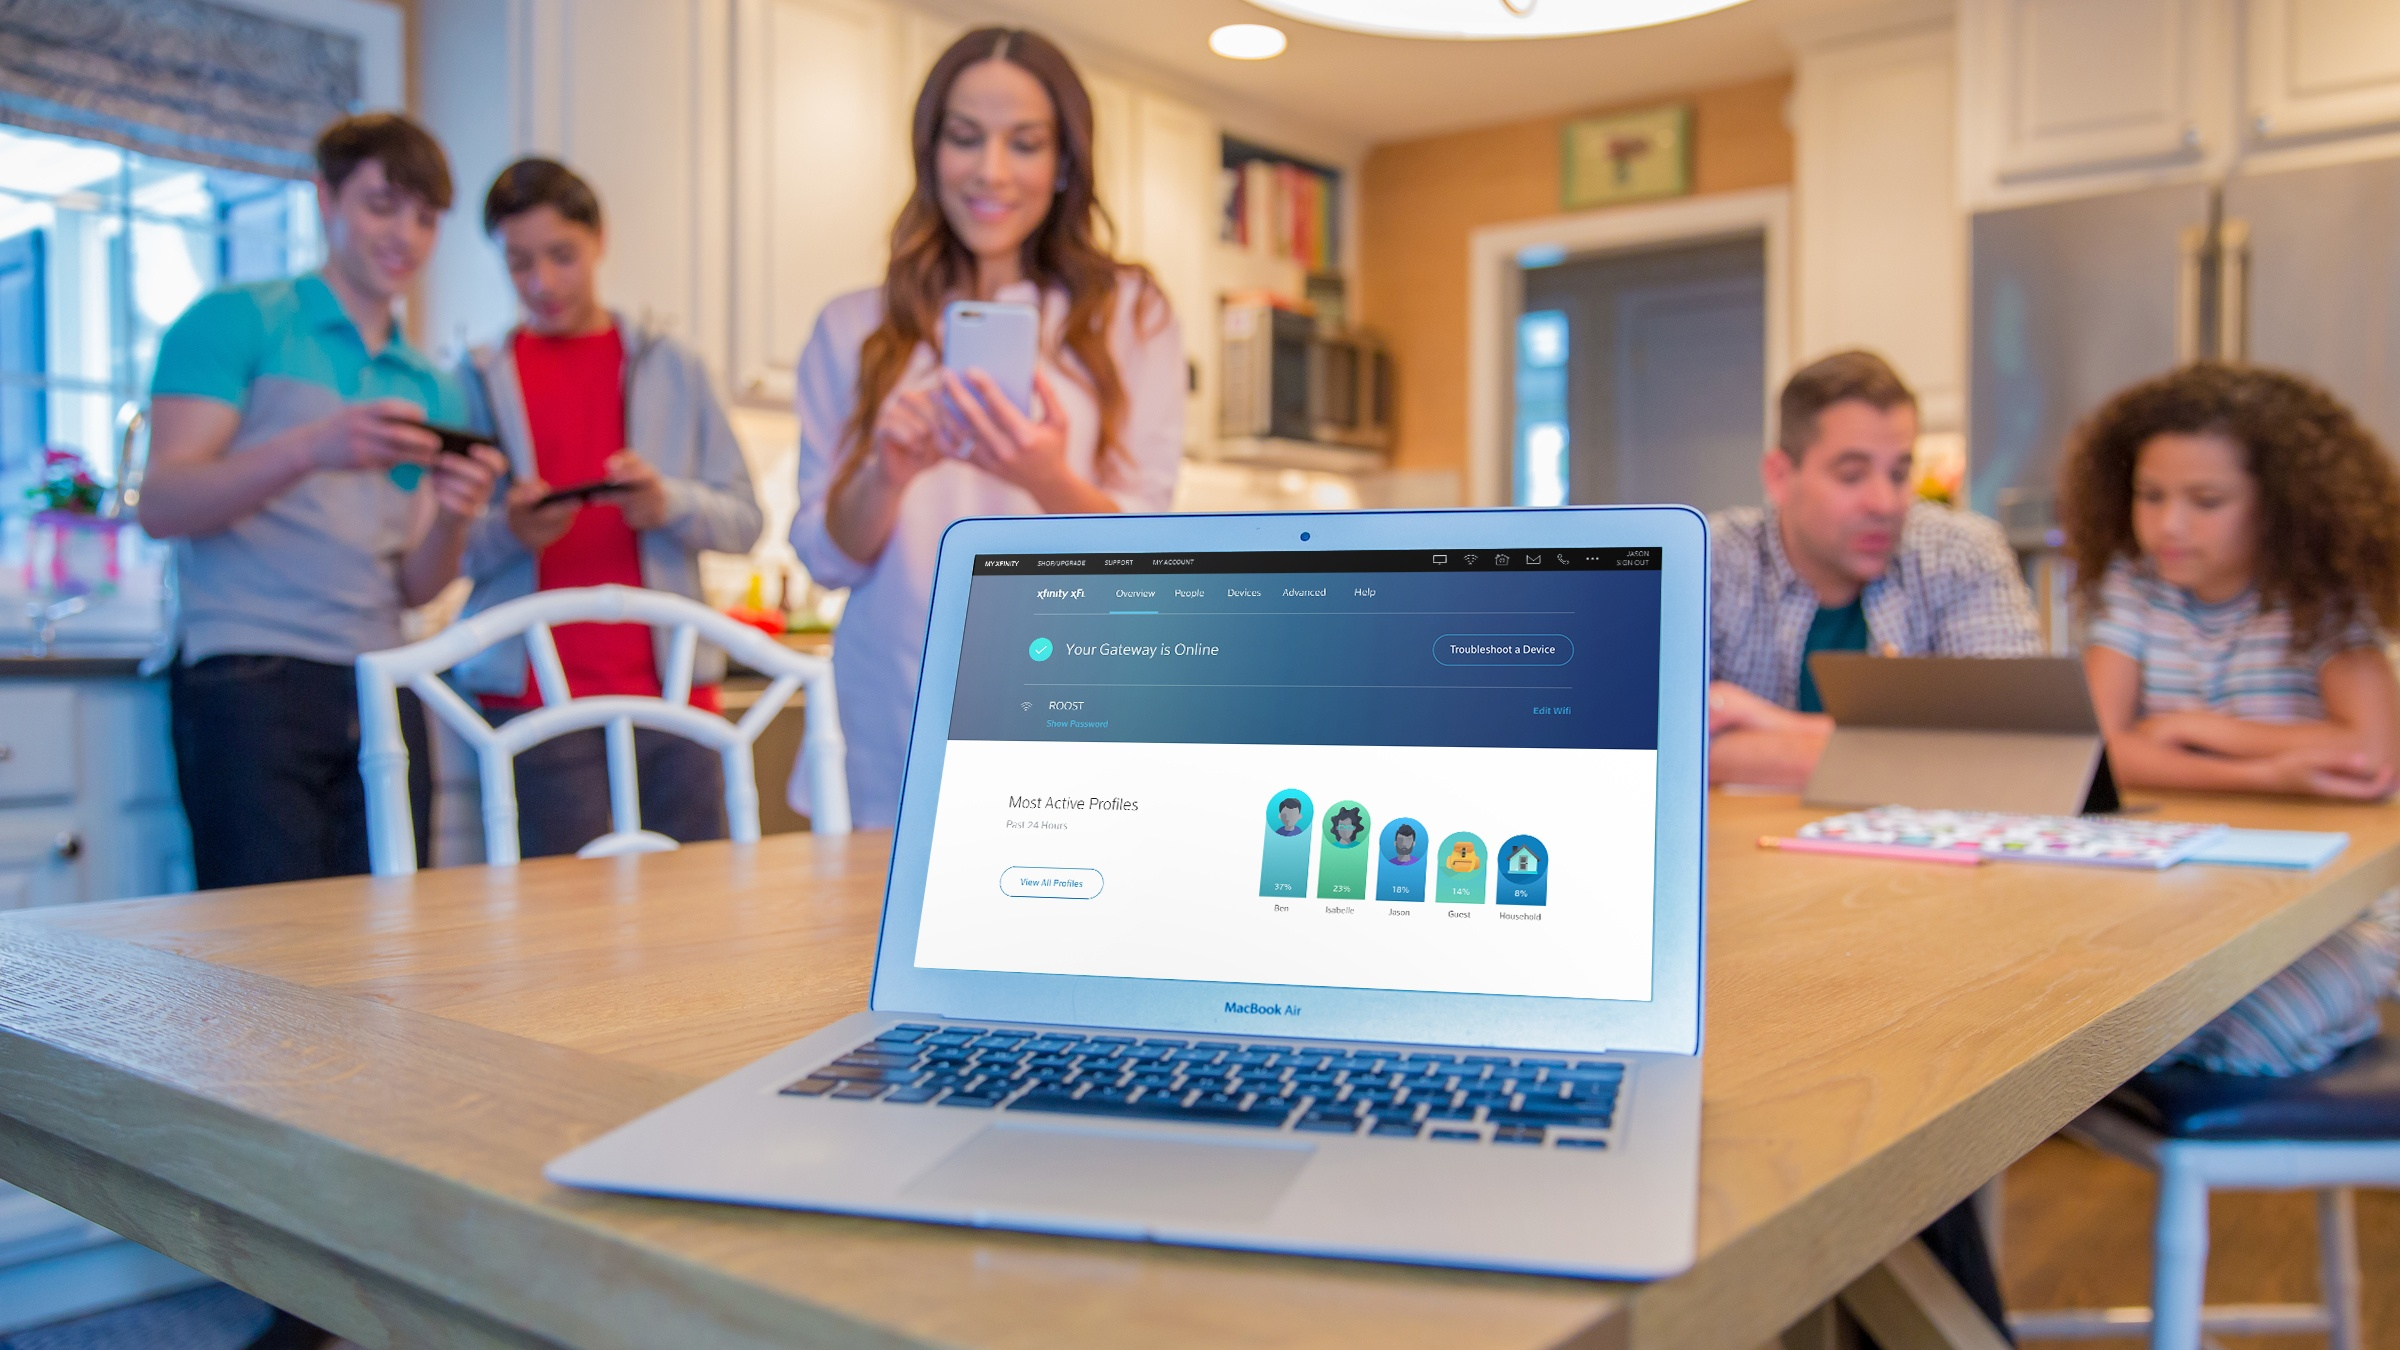 A family is gathered around a laptop displaying the status of their Xfinity xFi devices.